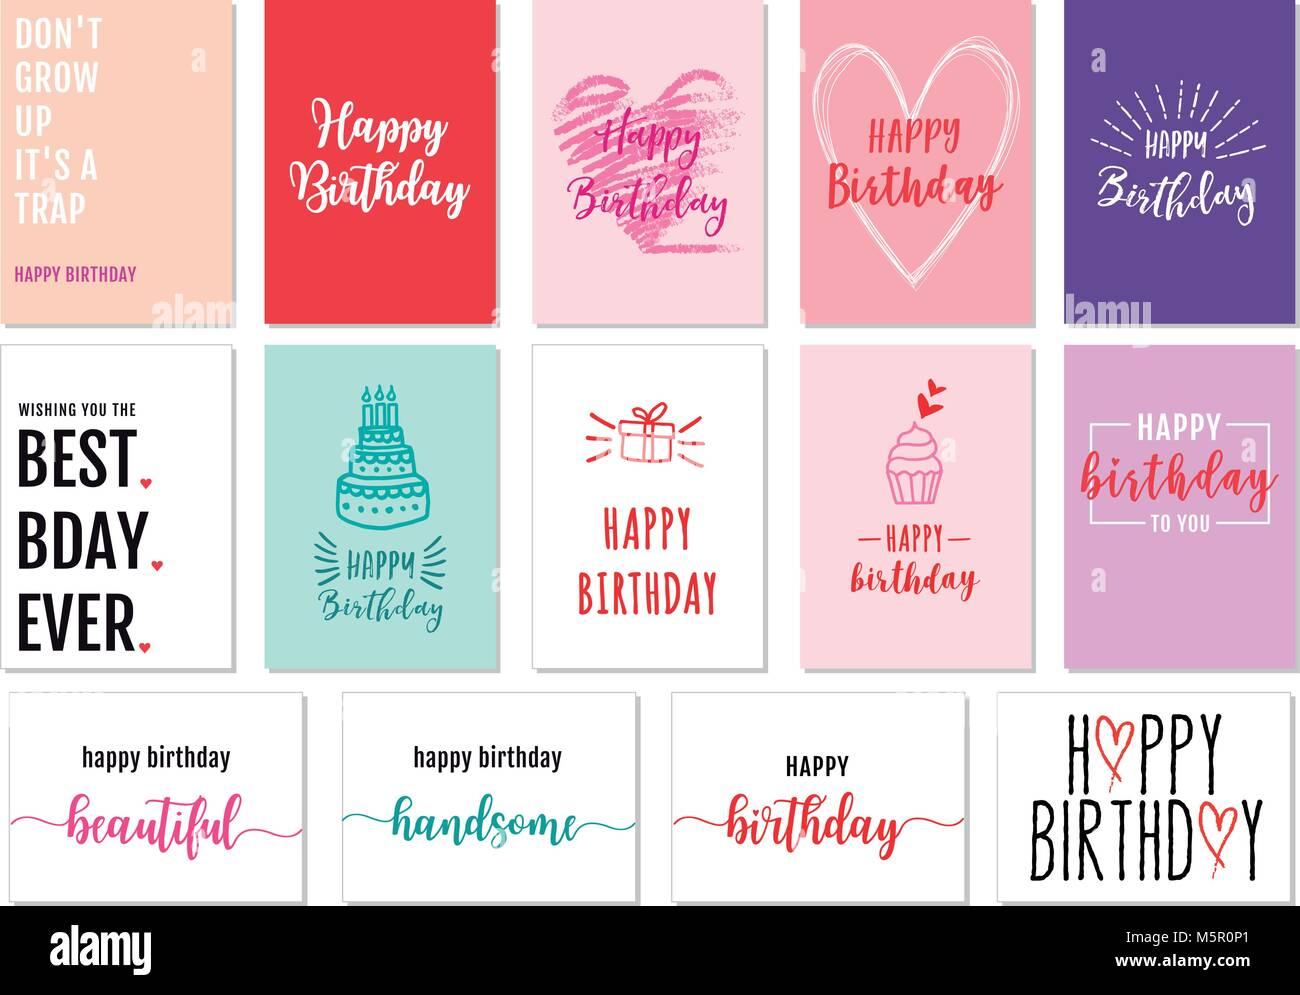 Birthday cards with hand-drawn graphic design elements, vector set - Stock Image